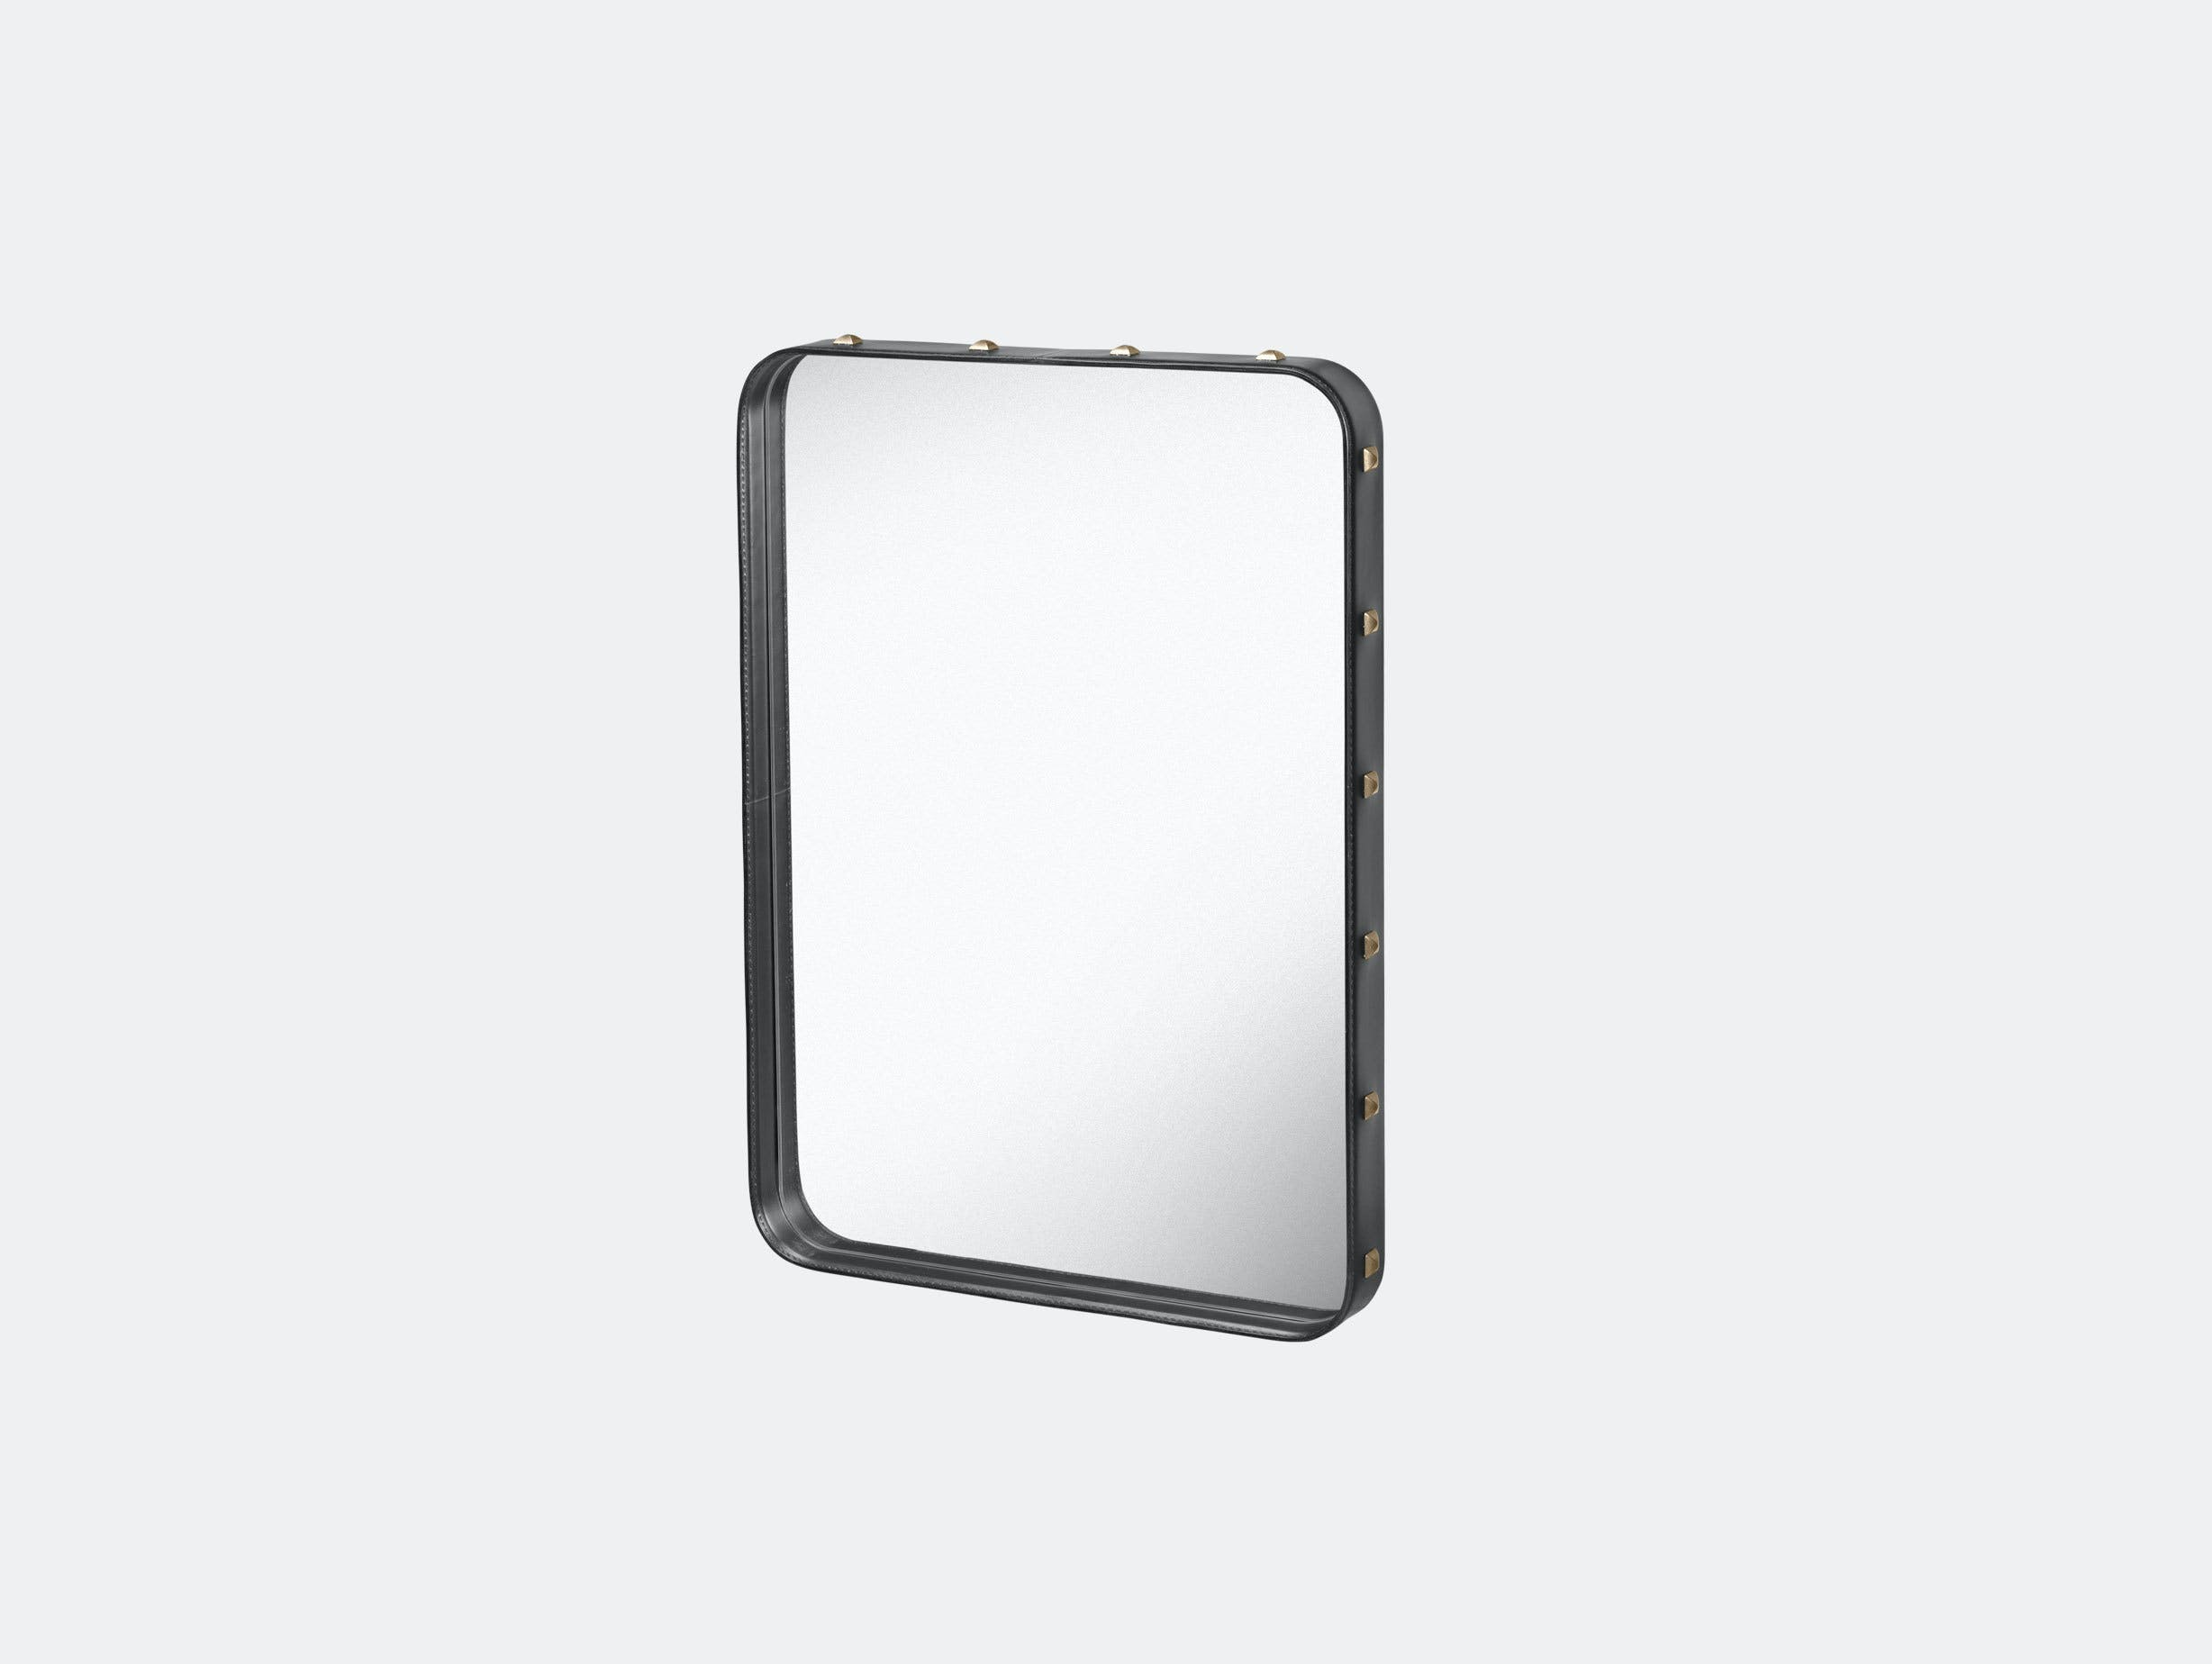 Gubi Adnet Rectangular Wall Mirror small black Jacques Adnet